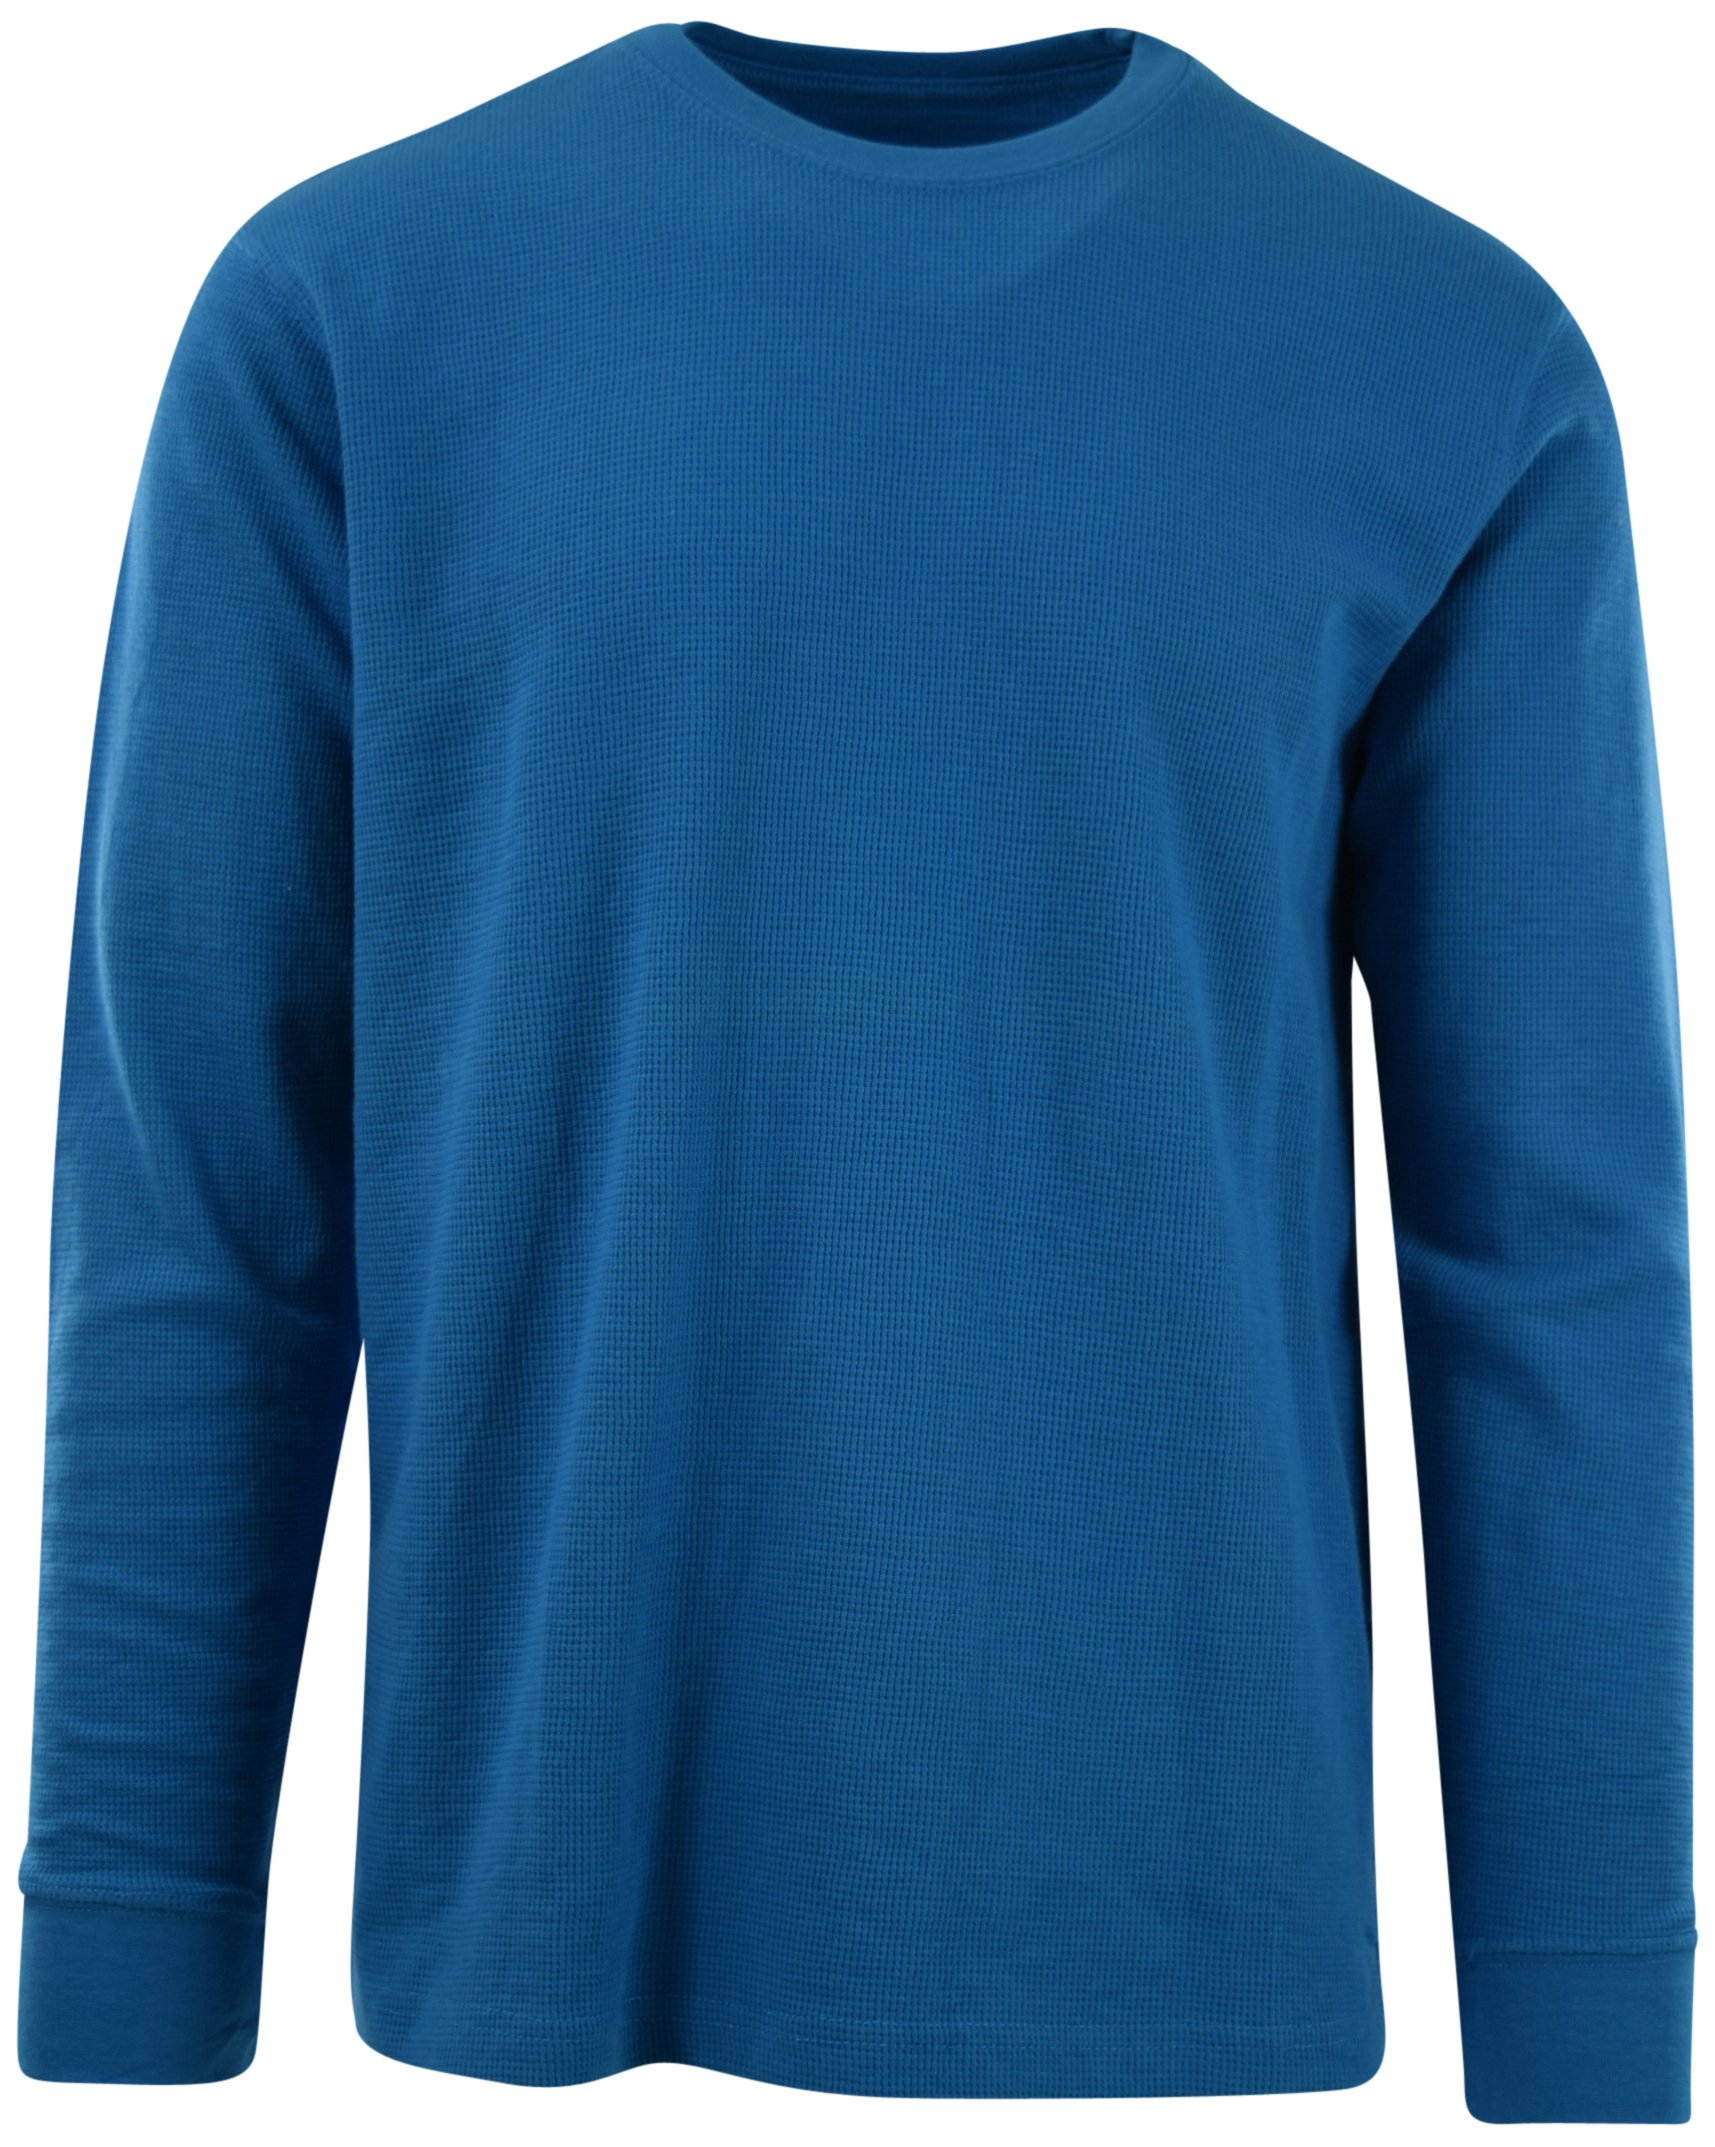 ChoiceApparel Mens Long Sleeve Thermal Waffle Pattern Crew Neck Shirts (Many Colors) (XL, 1805-Vivid Blue) by ChoiceApparel